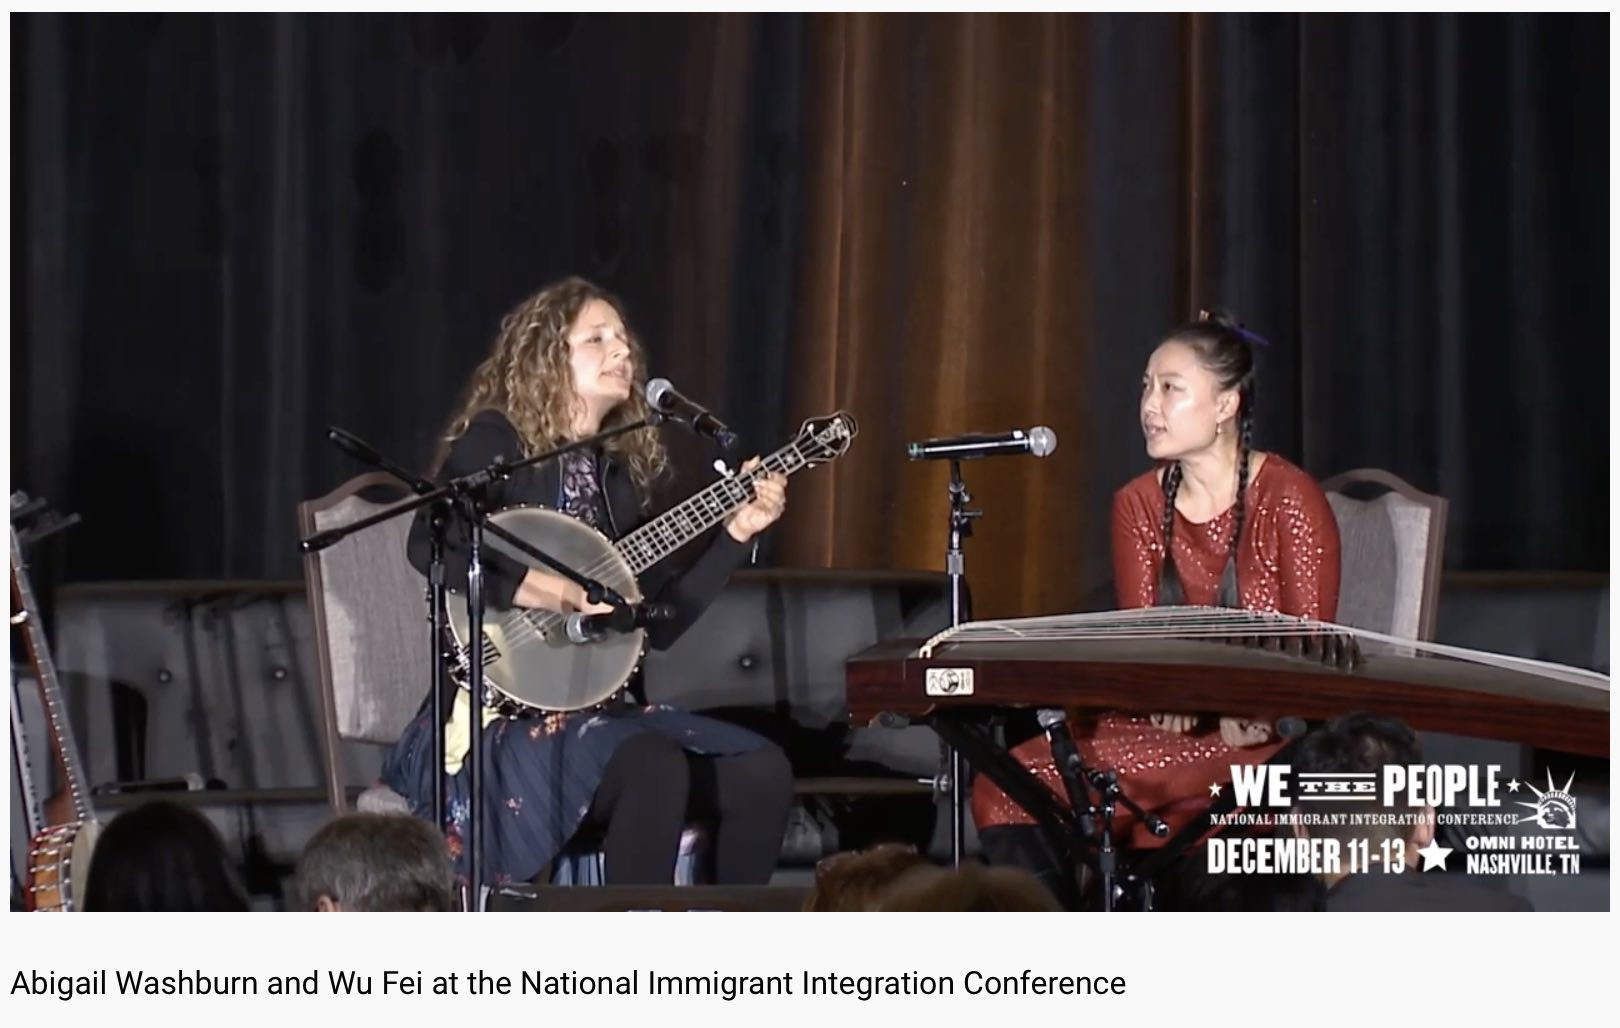 Still from the video showing Abigail Washburn and Wu Fei performing at the National Immigrant Integration Conference in 2016.